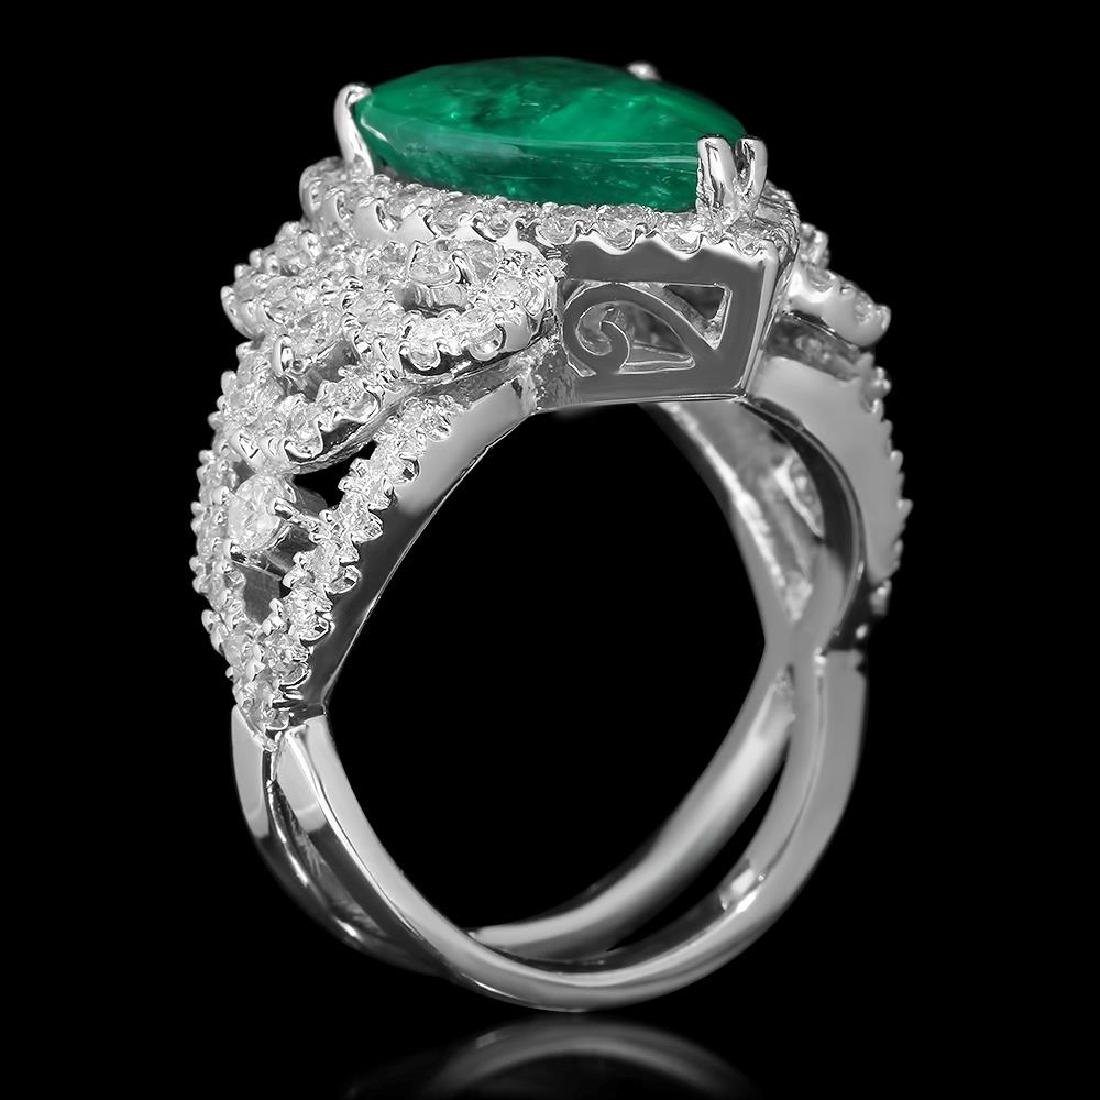 14K Gold 4.55 Emerald 1.20 Diamond Ring - 2